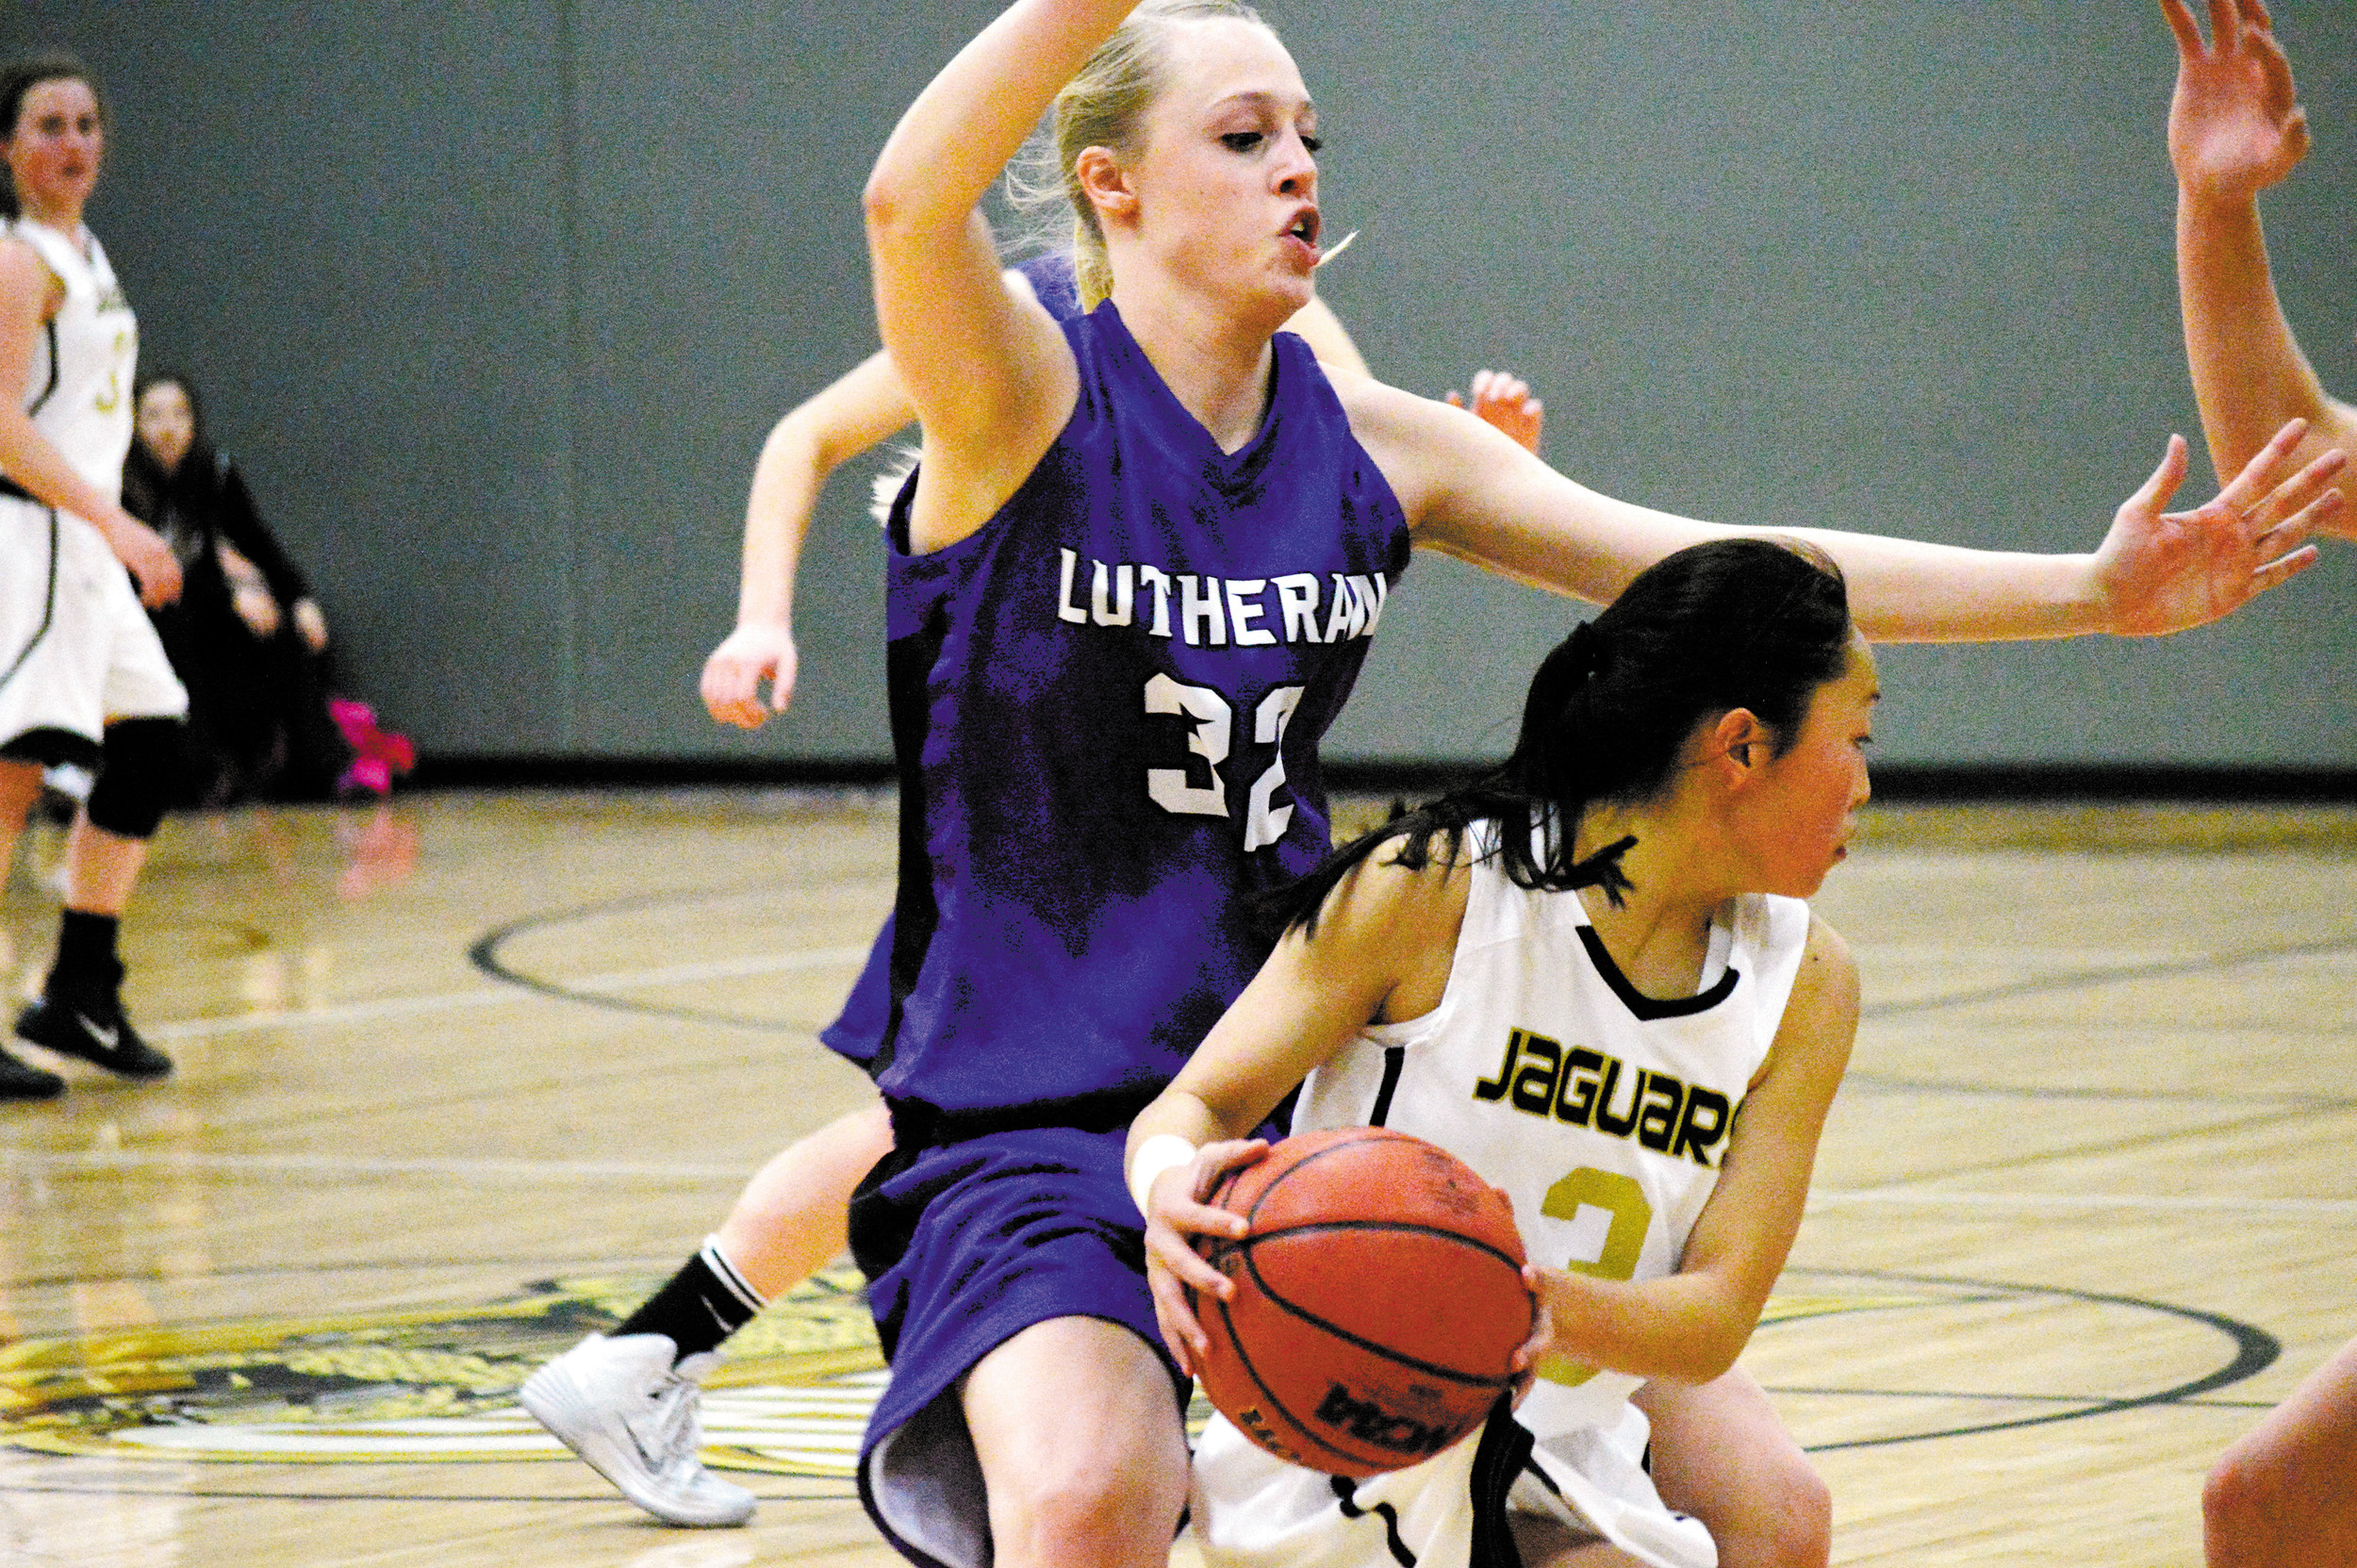 Lutheran's Cara Thomas, left, guards Jefferson Academy's Kristi Nagai, right Jan. 22 at Jefferson Academy High School. Thomas led the Lions with 19 points in the team's 49-46 victory.